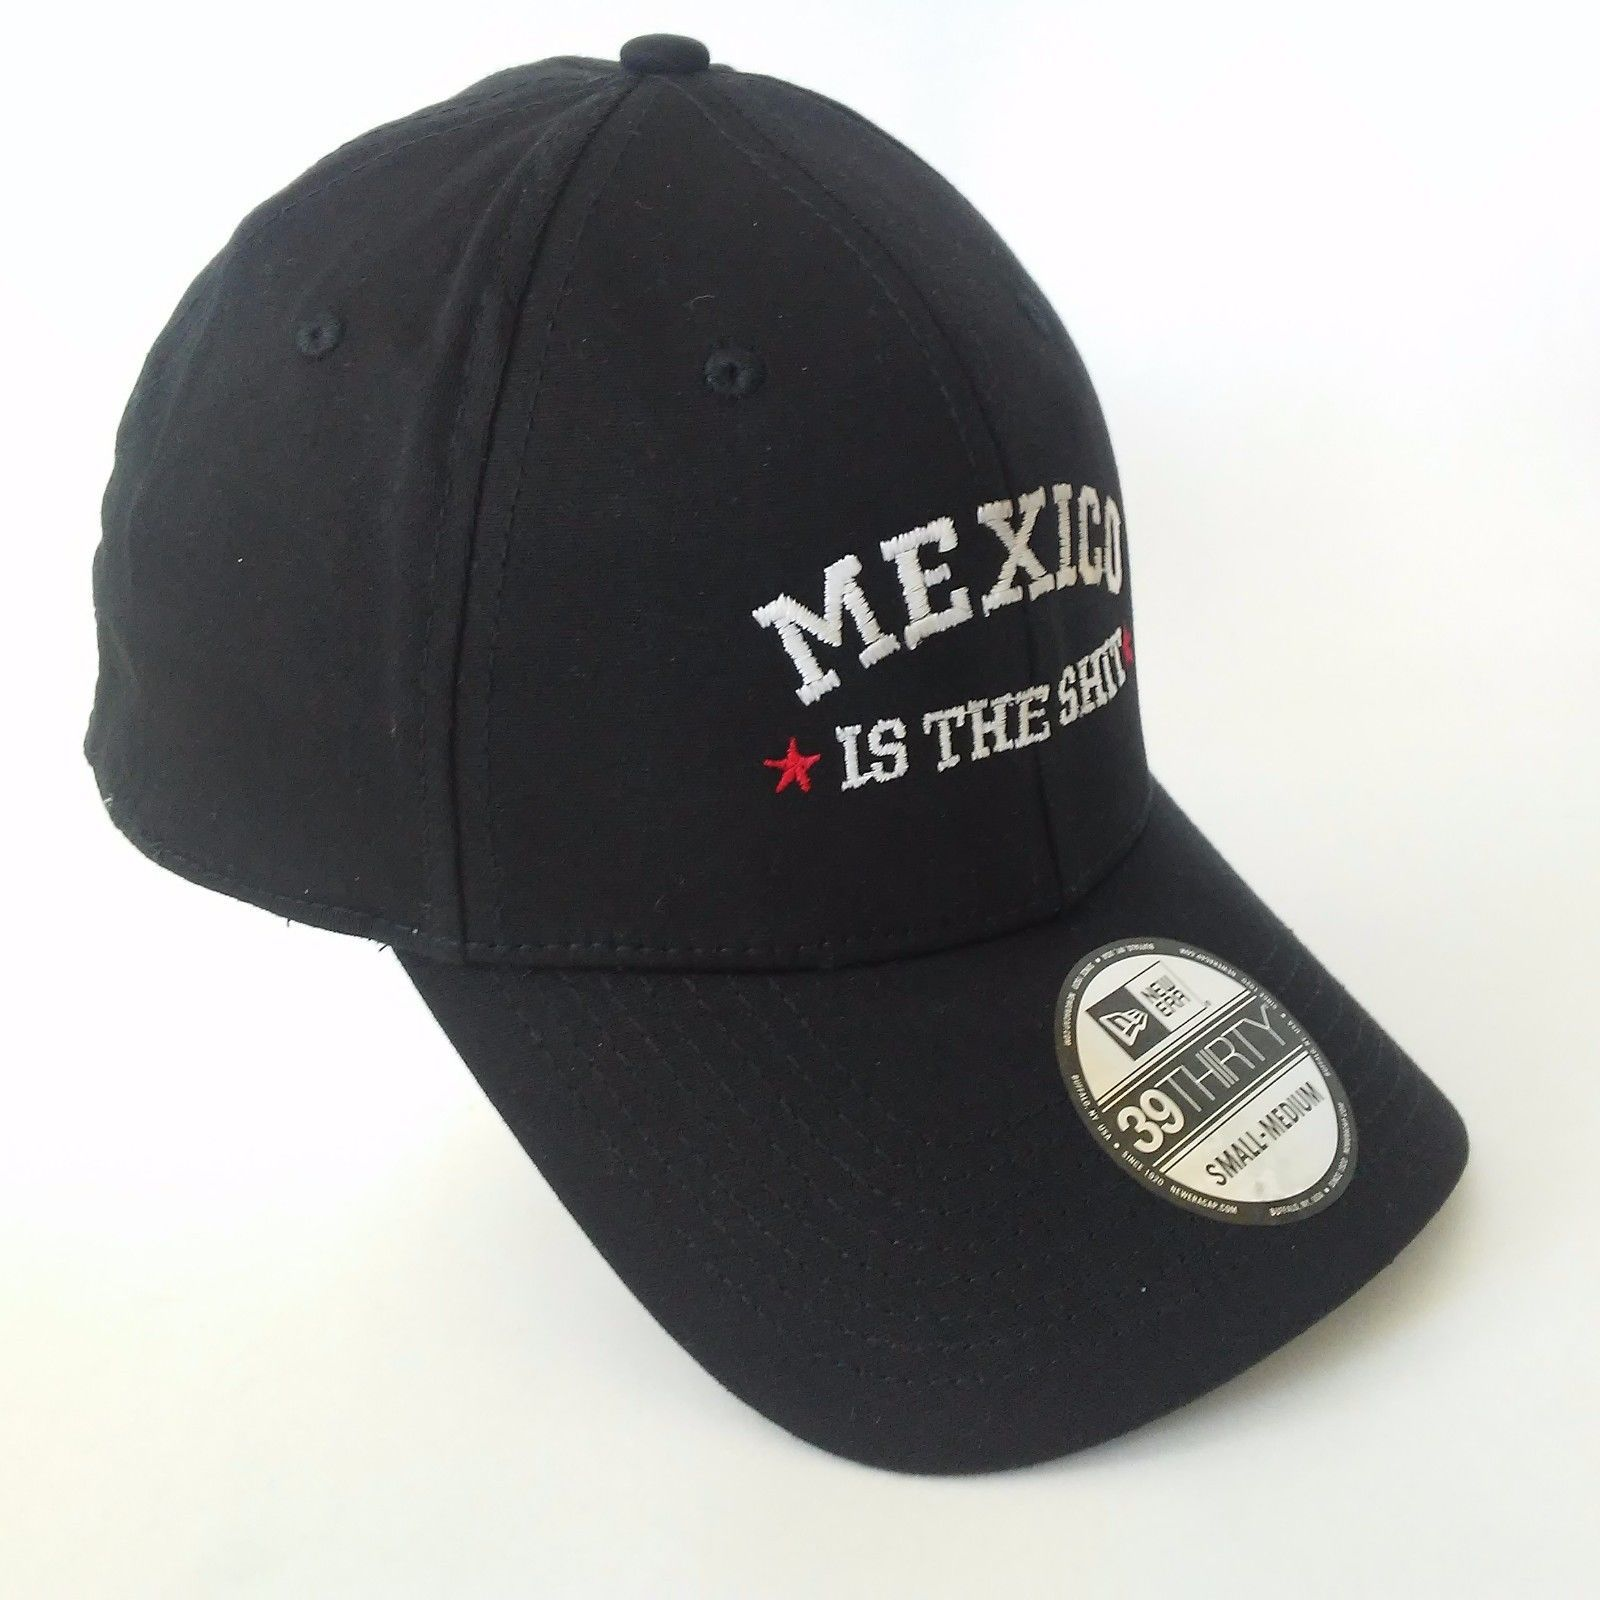 New Era 39THIRTY hat with MEXICO IS THE SHIT Embroidered hat black